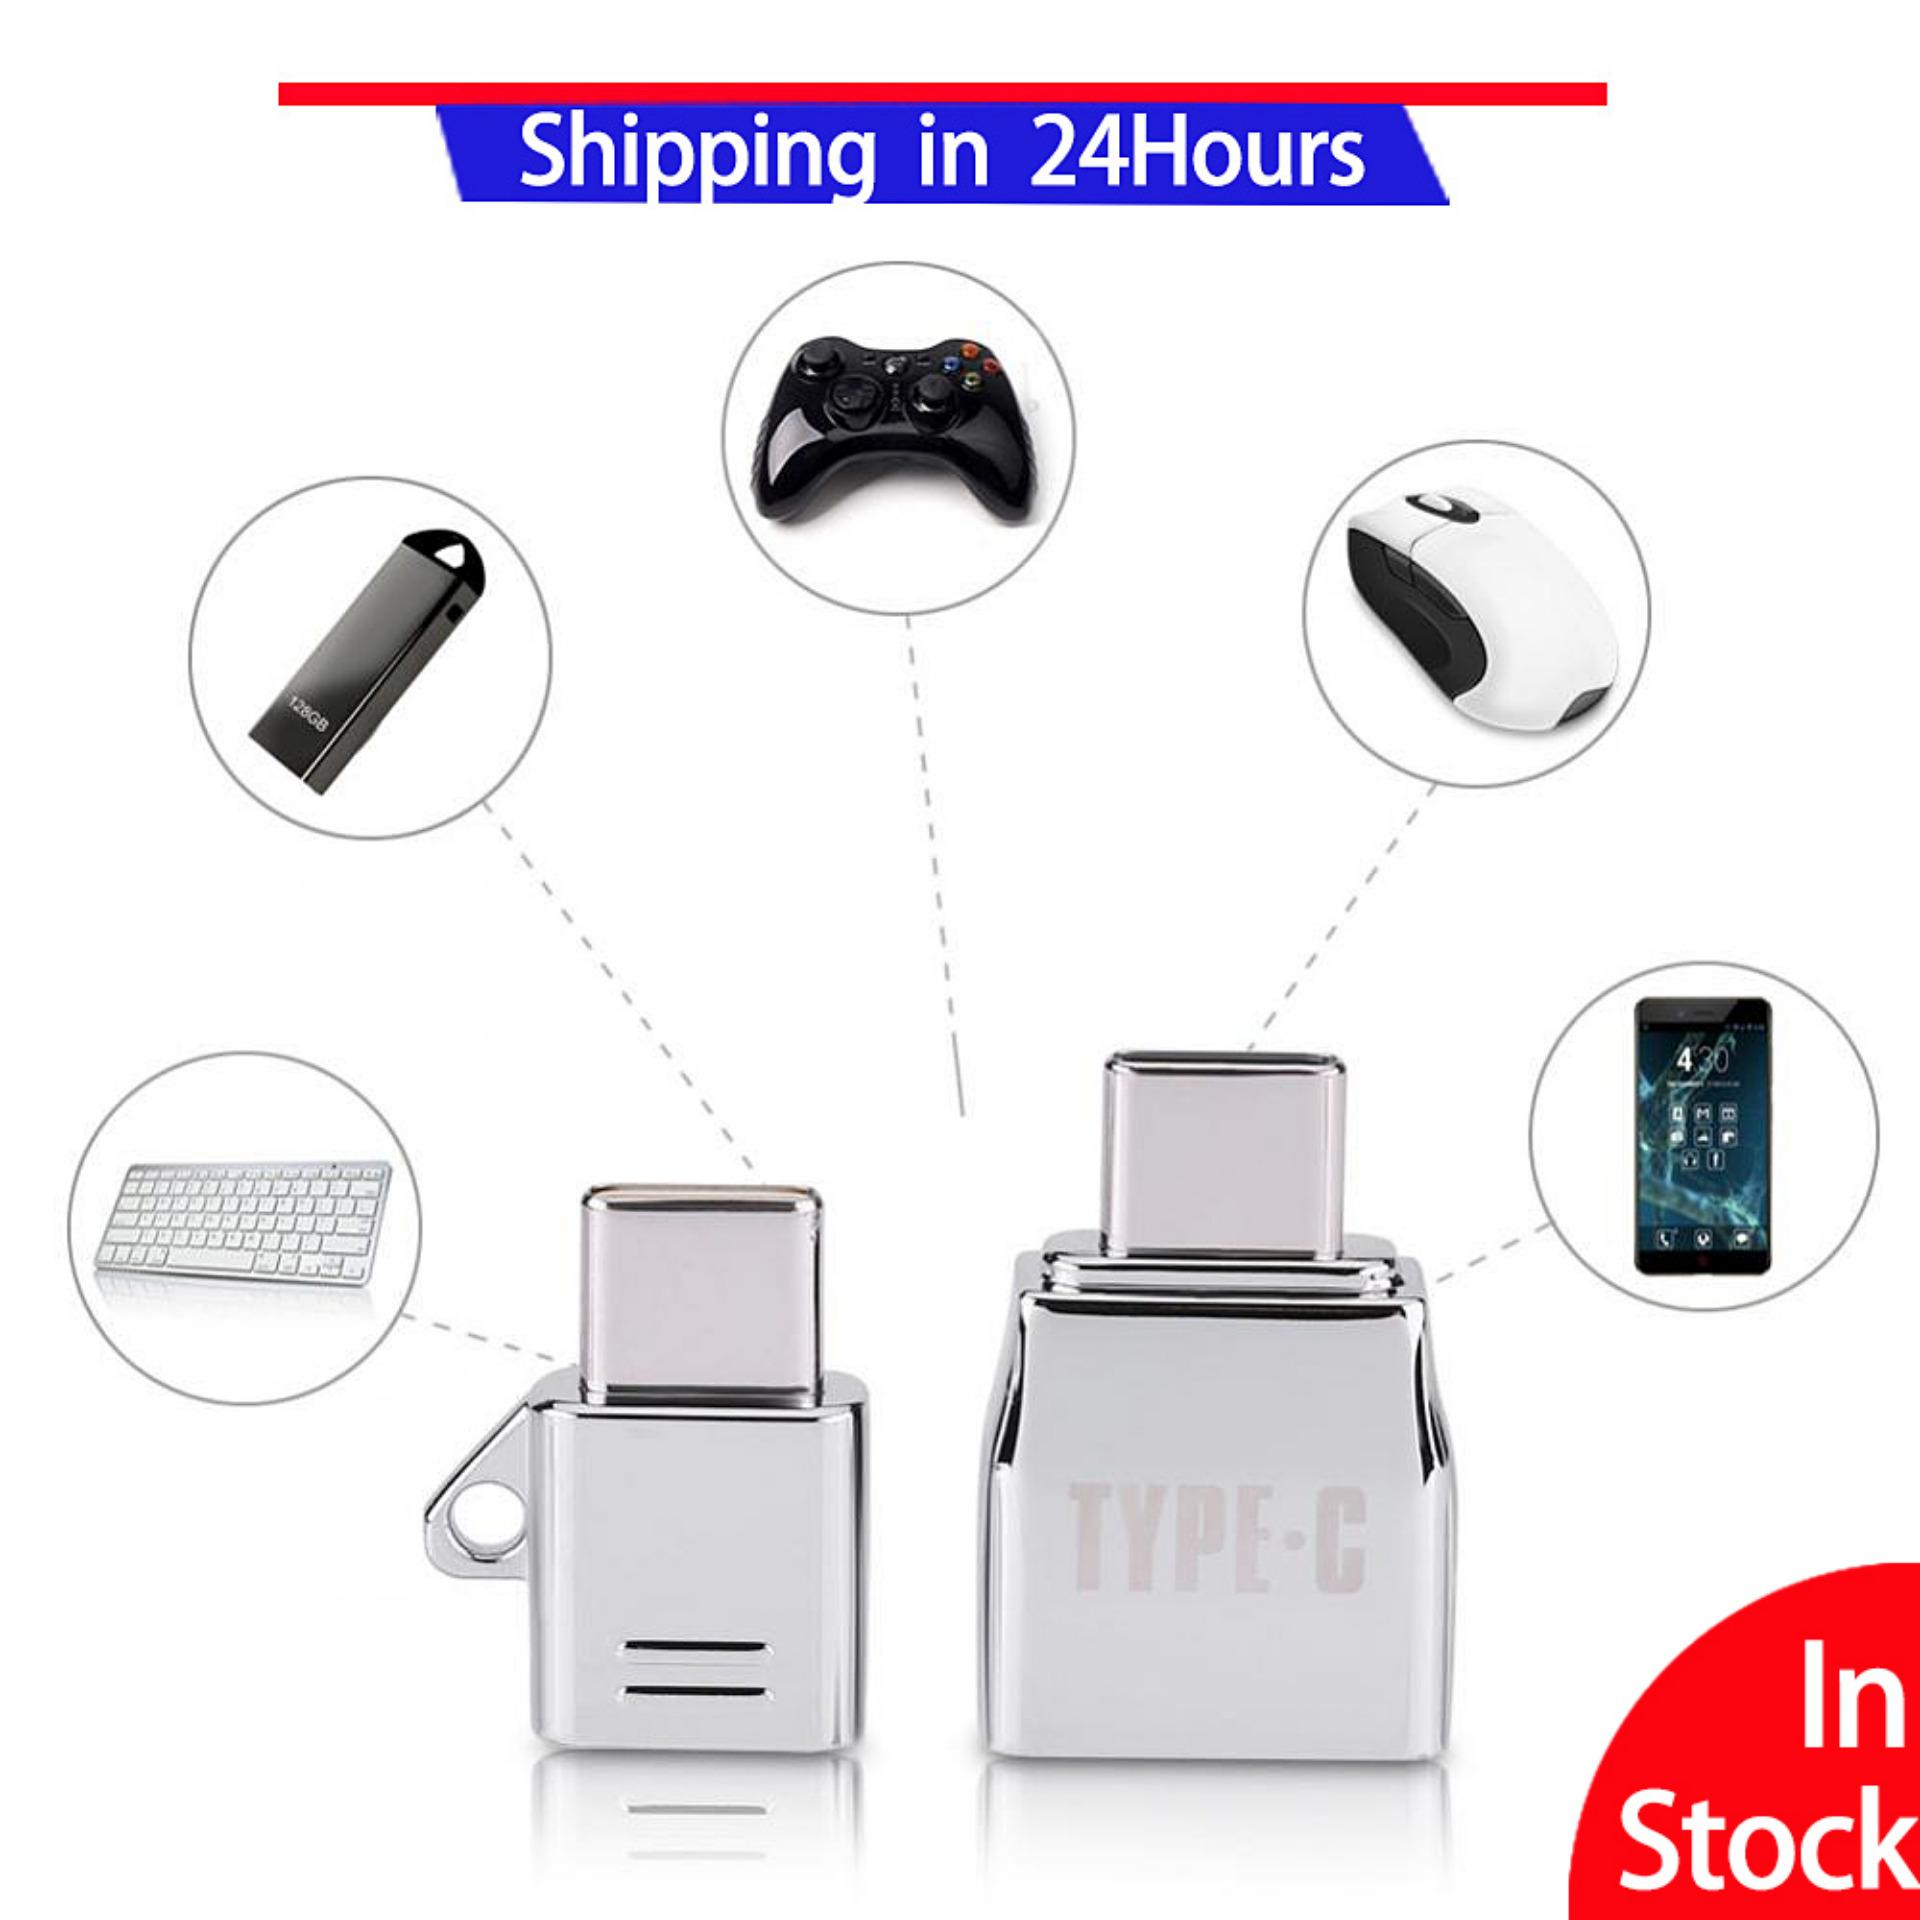 2 Pcs Micro Usb Female Ke Tipe C Usb Male Otg Adaptor Charger Paduan Seng Set Suit-Intl By Sweatbuy.